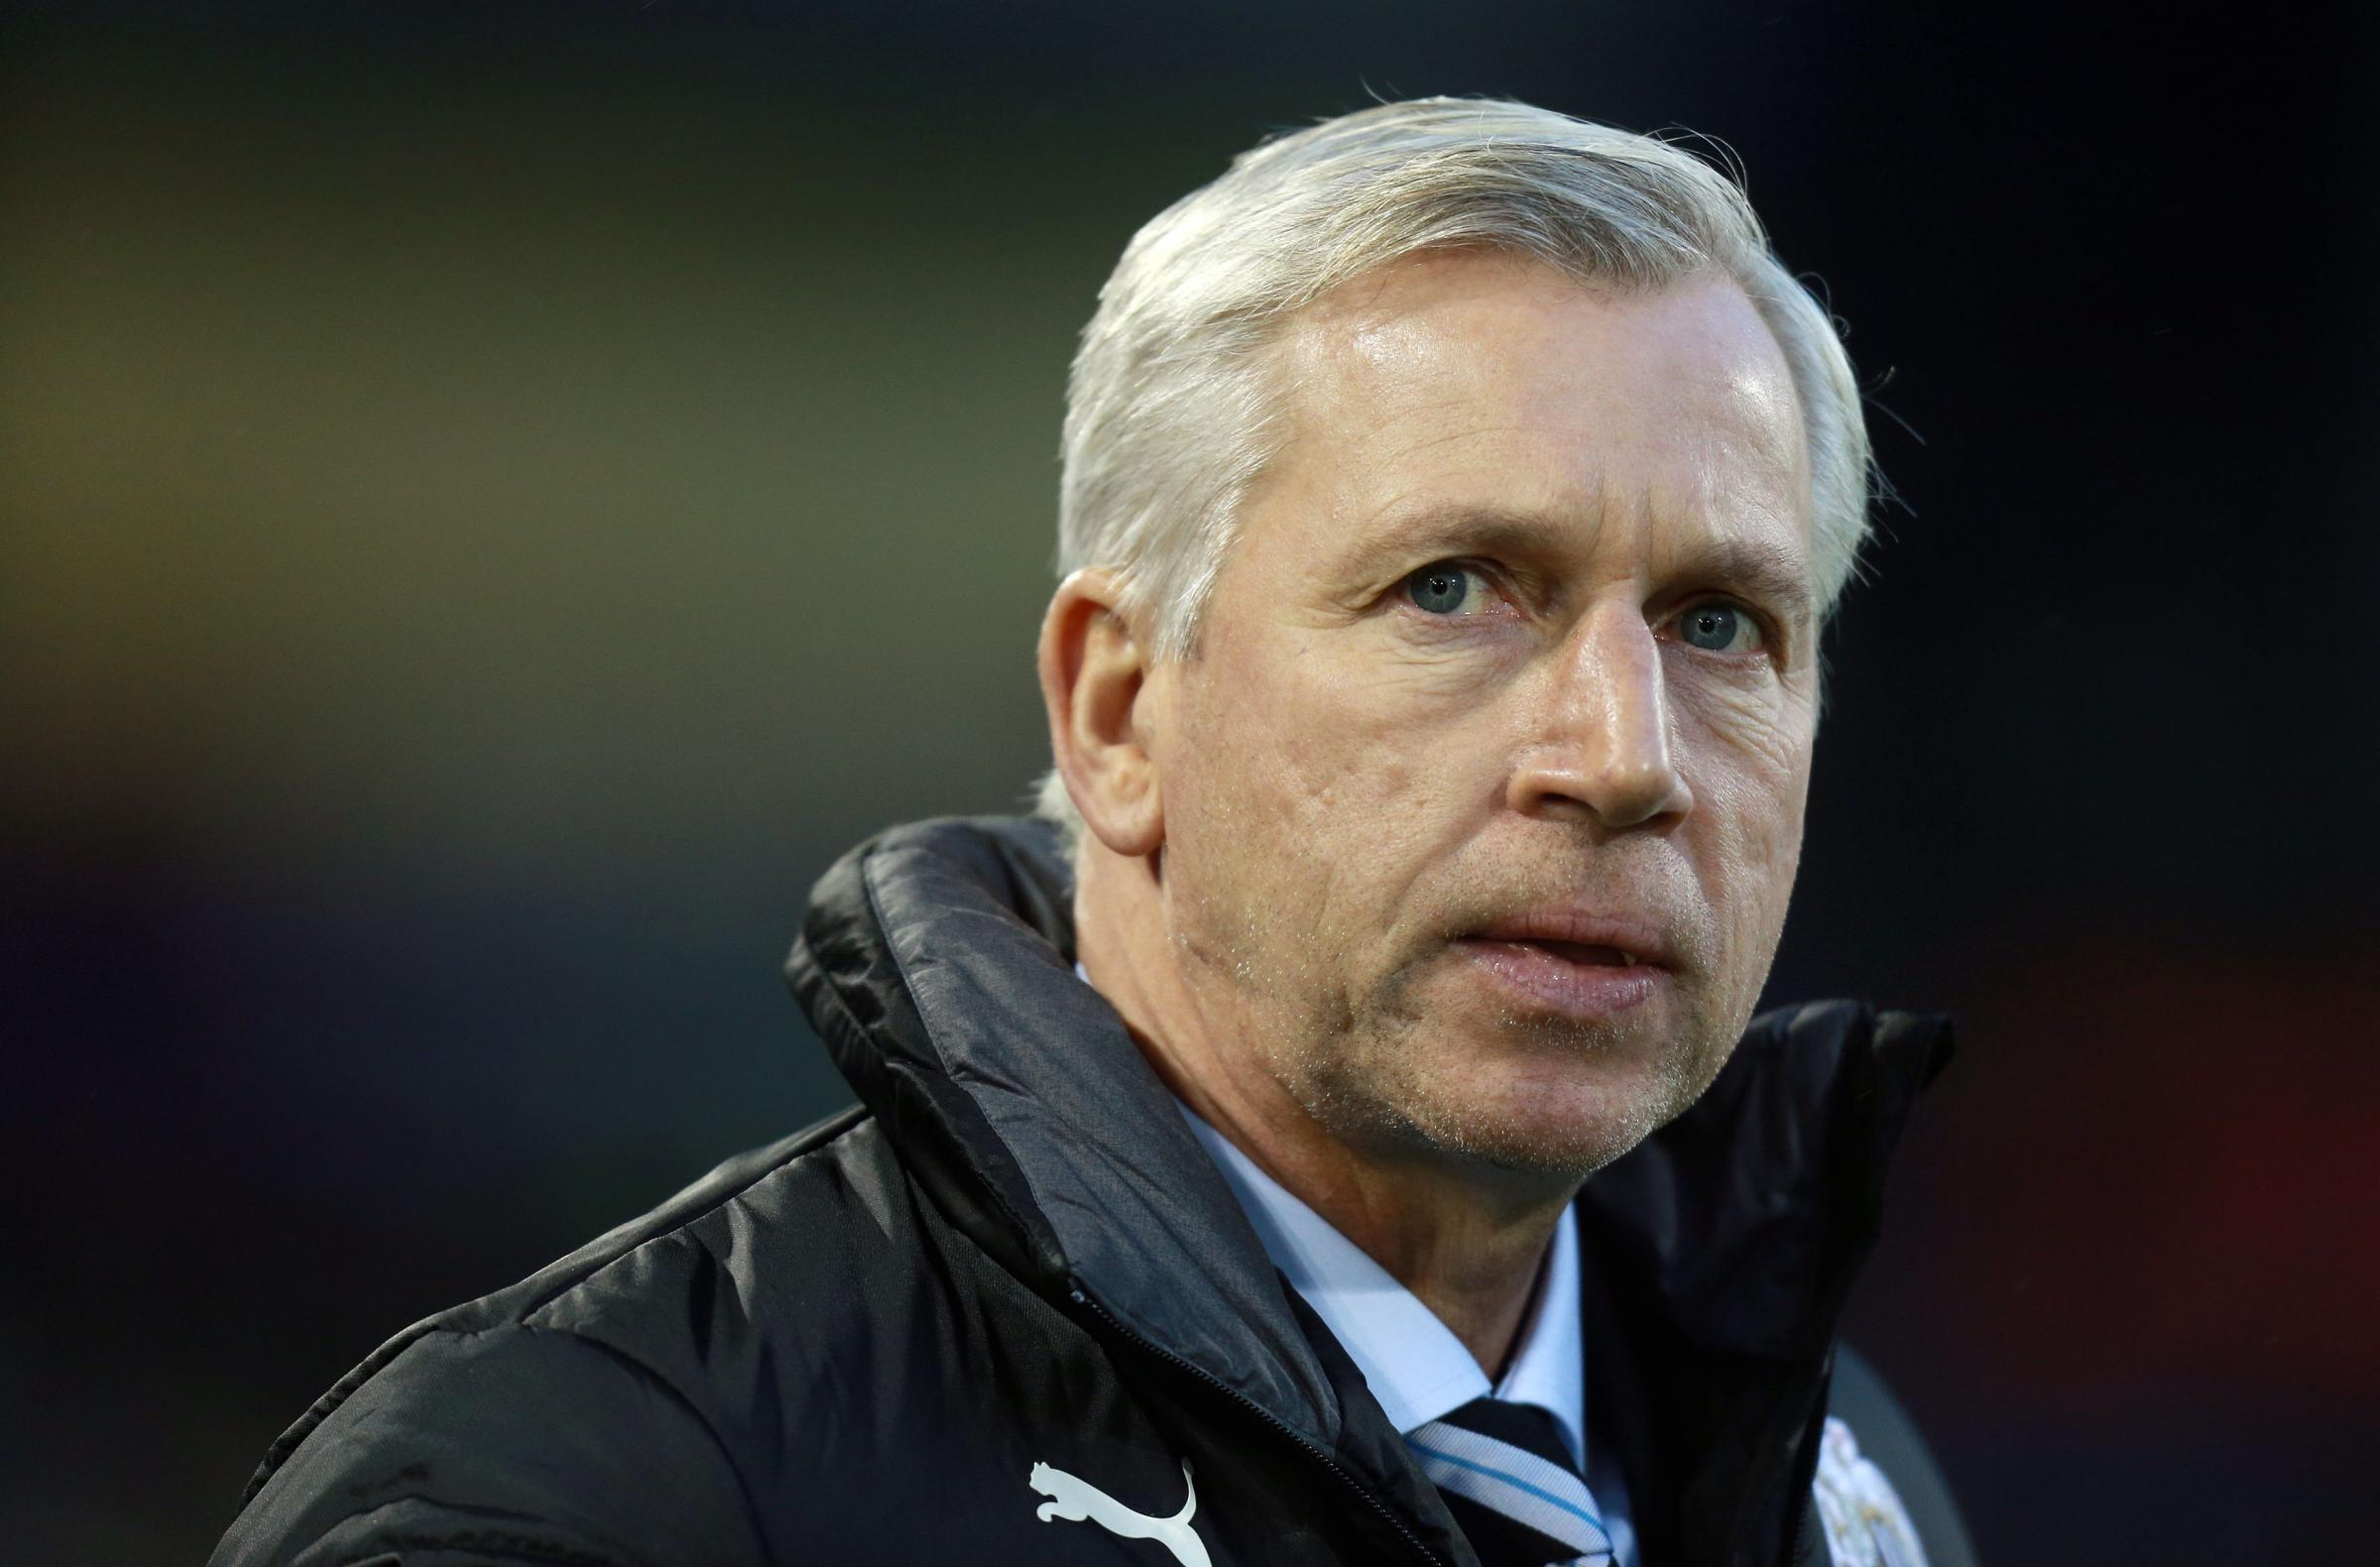 HE'S BACK: Alan Pardew made his return to the dug-out on Monday night after serving a seven-match touchline ban